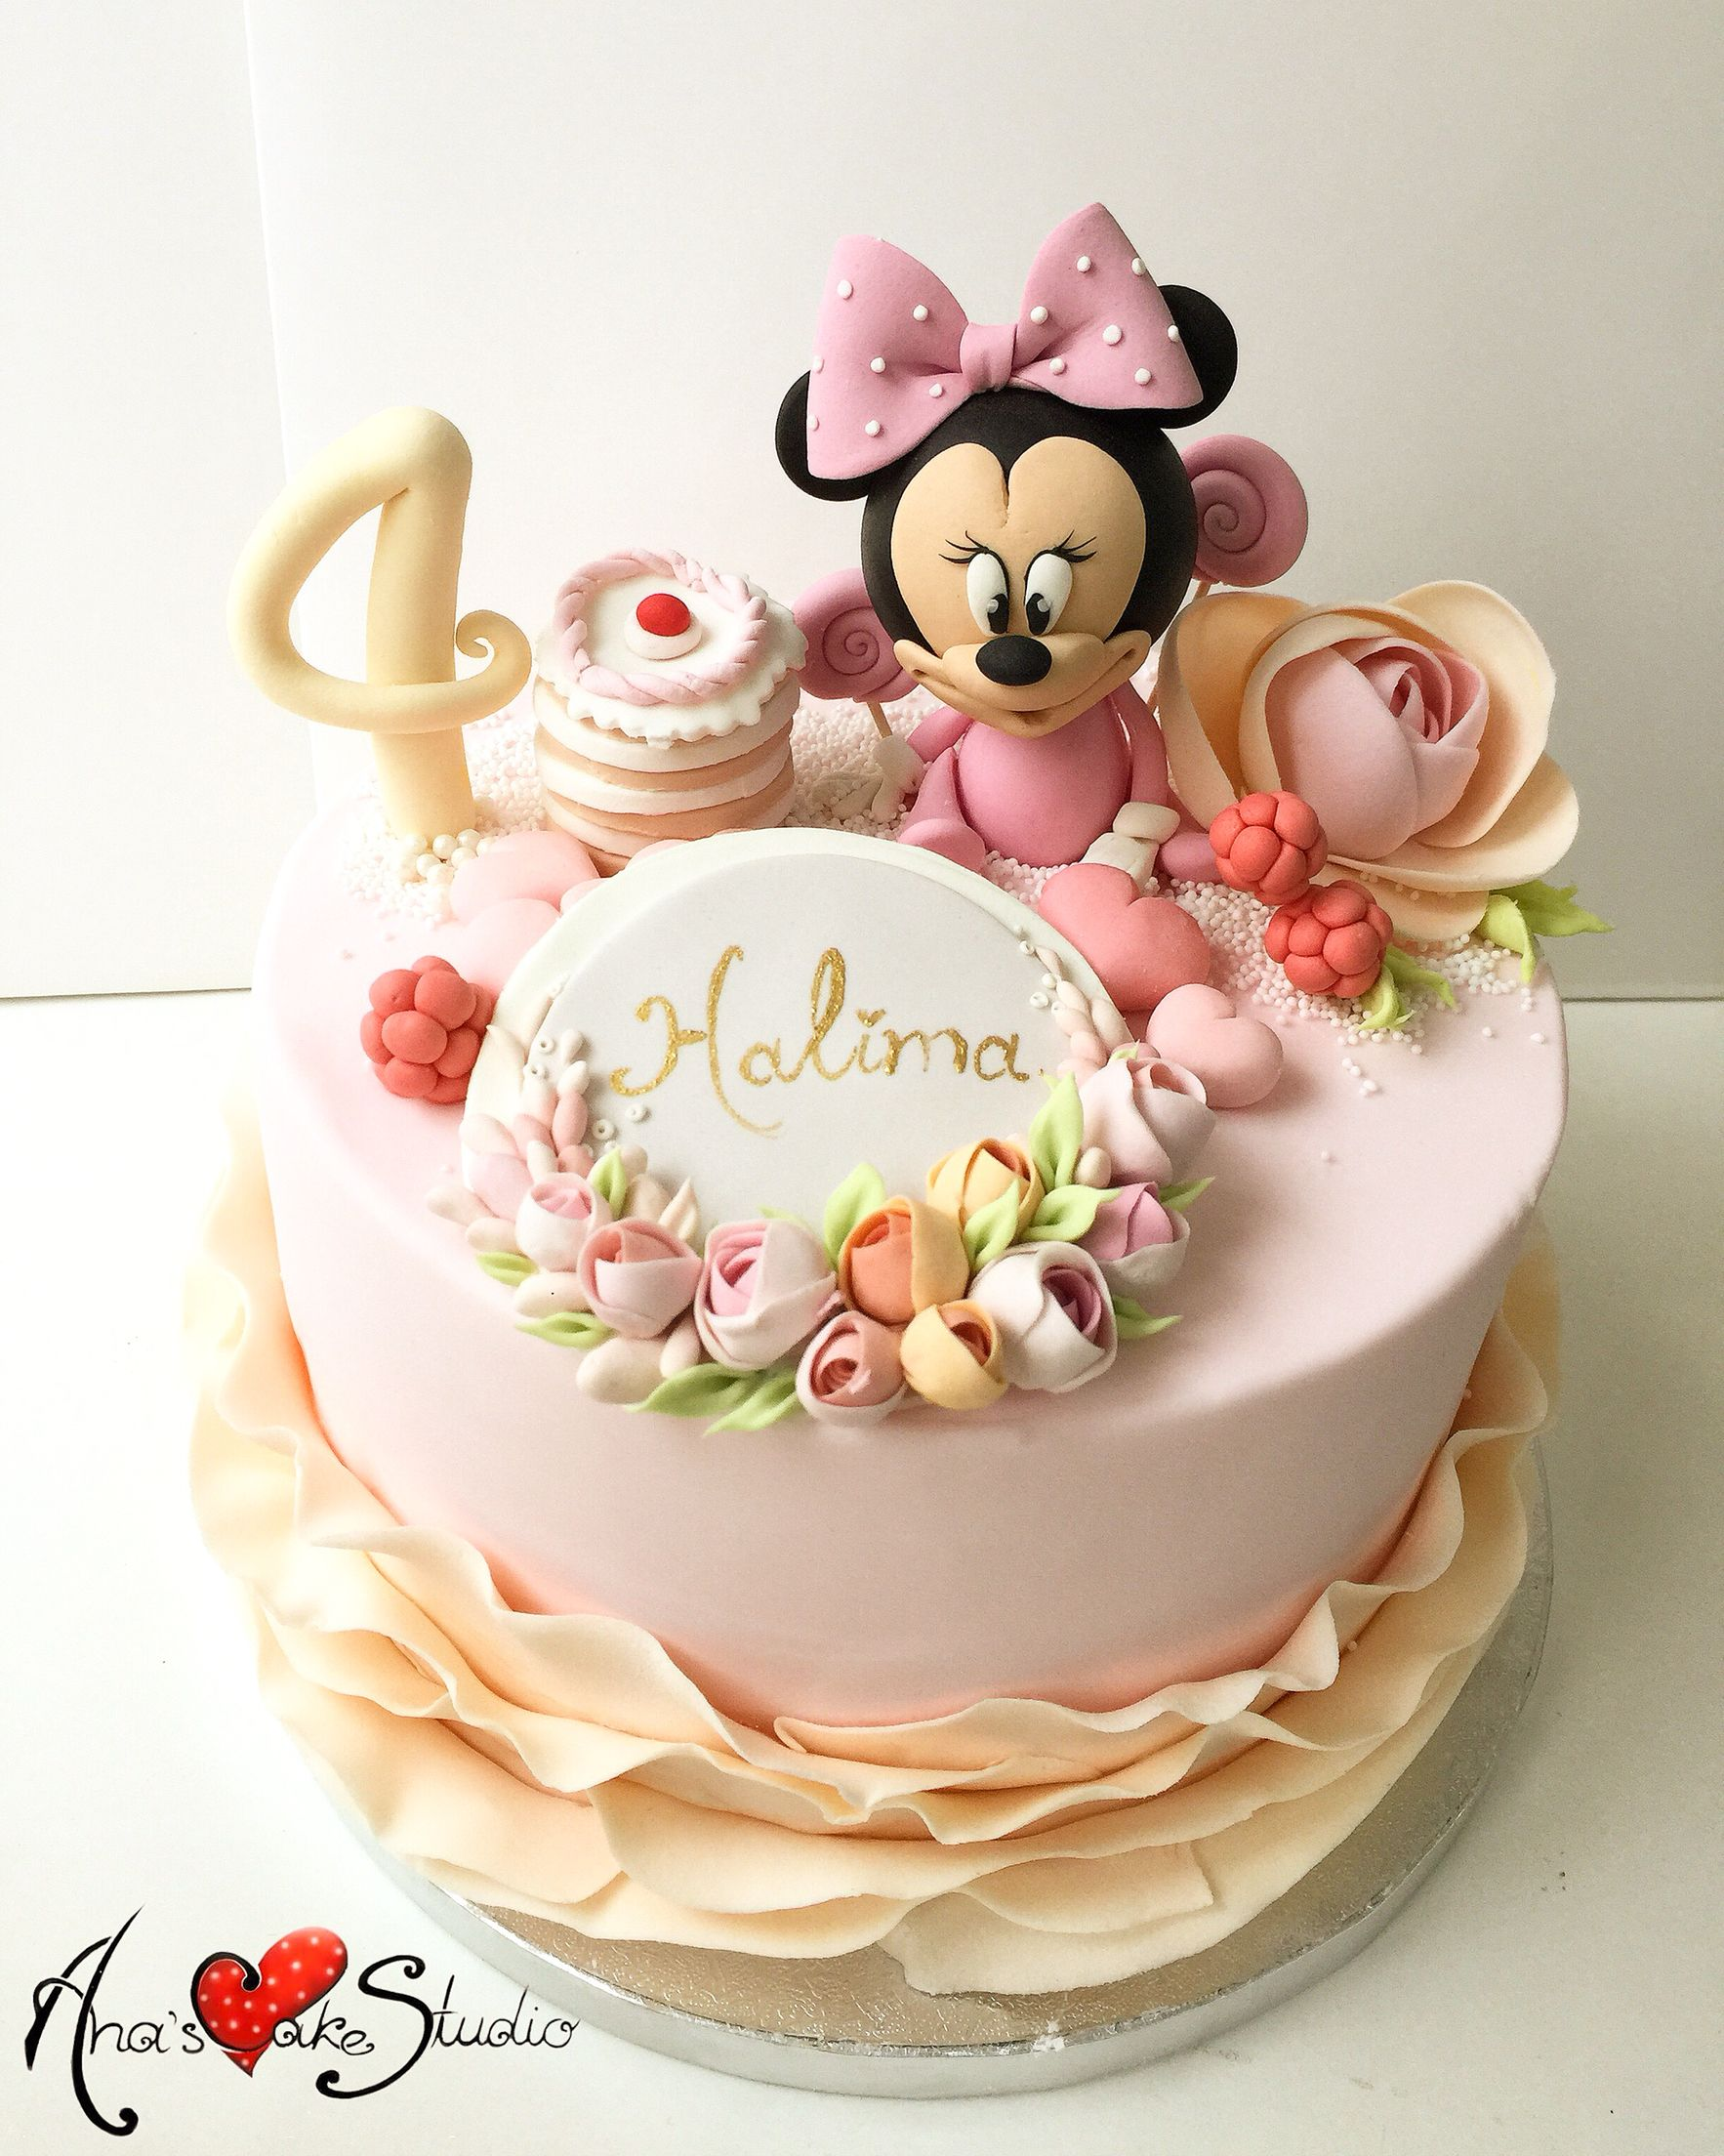 Stupendous Minnie Mouse Cake Minnie Mouse Birthday Cakes Minnie Cake Mini Funny Birthday Cards Online Elaedamsfinfo